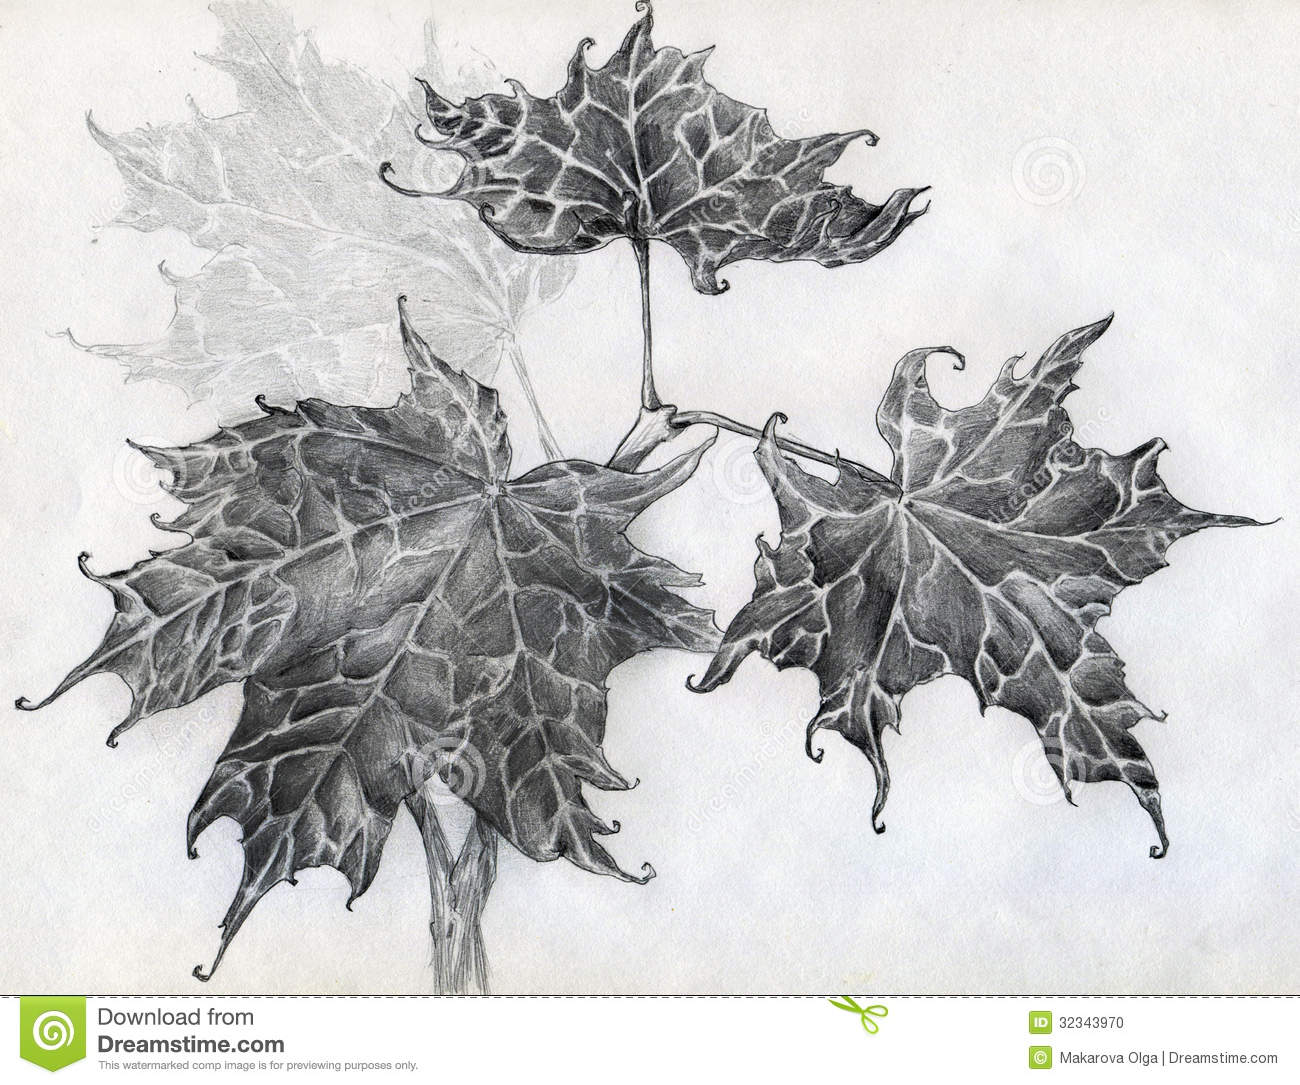 Sketch of four maple leaves growing together on one branch